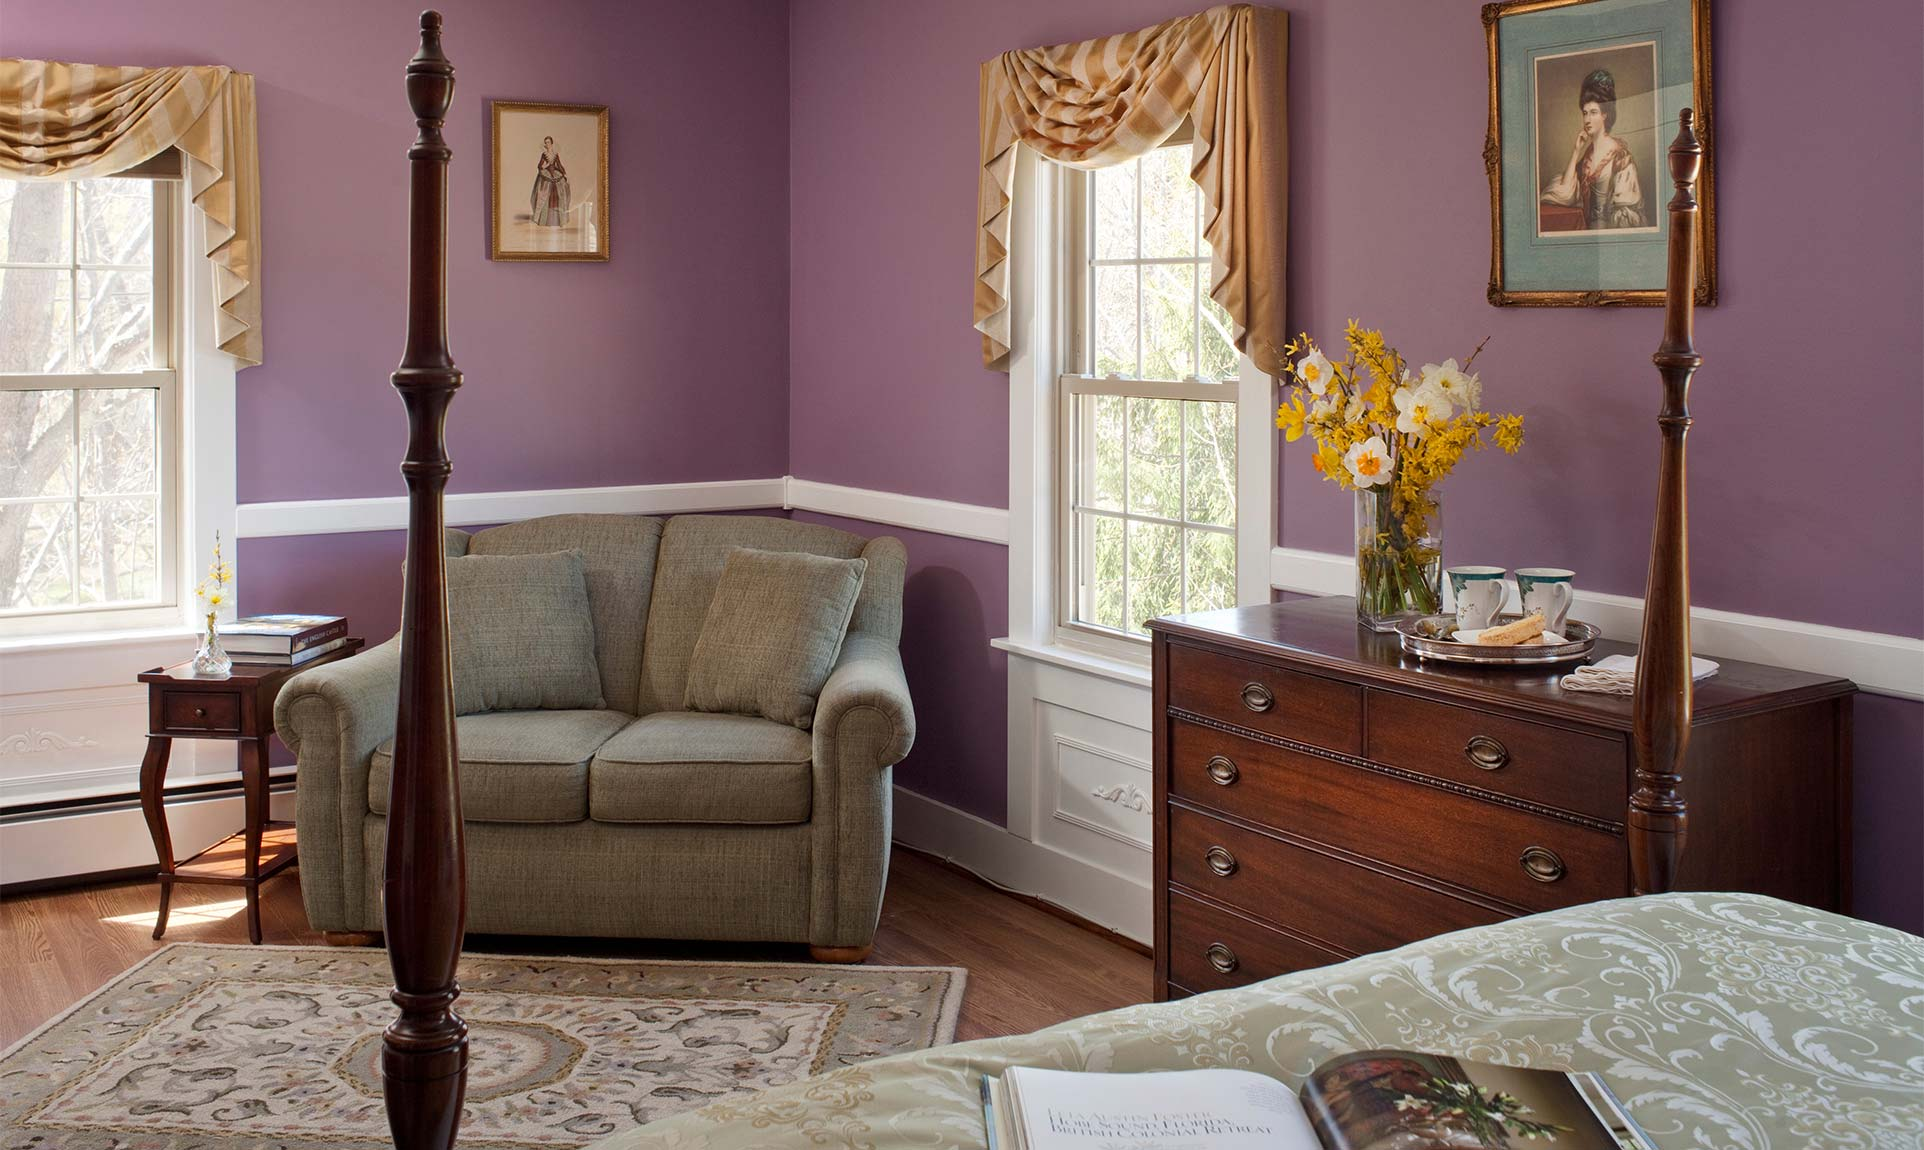 Spacious seating area with a 5 drawer dresser and two windows